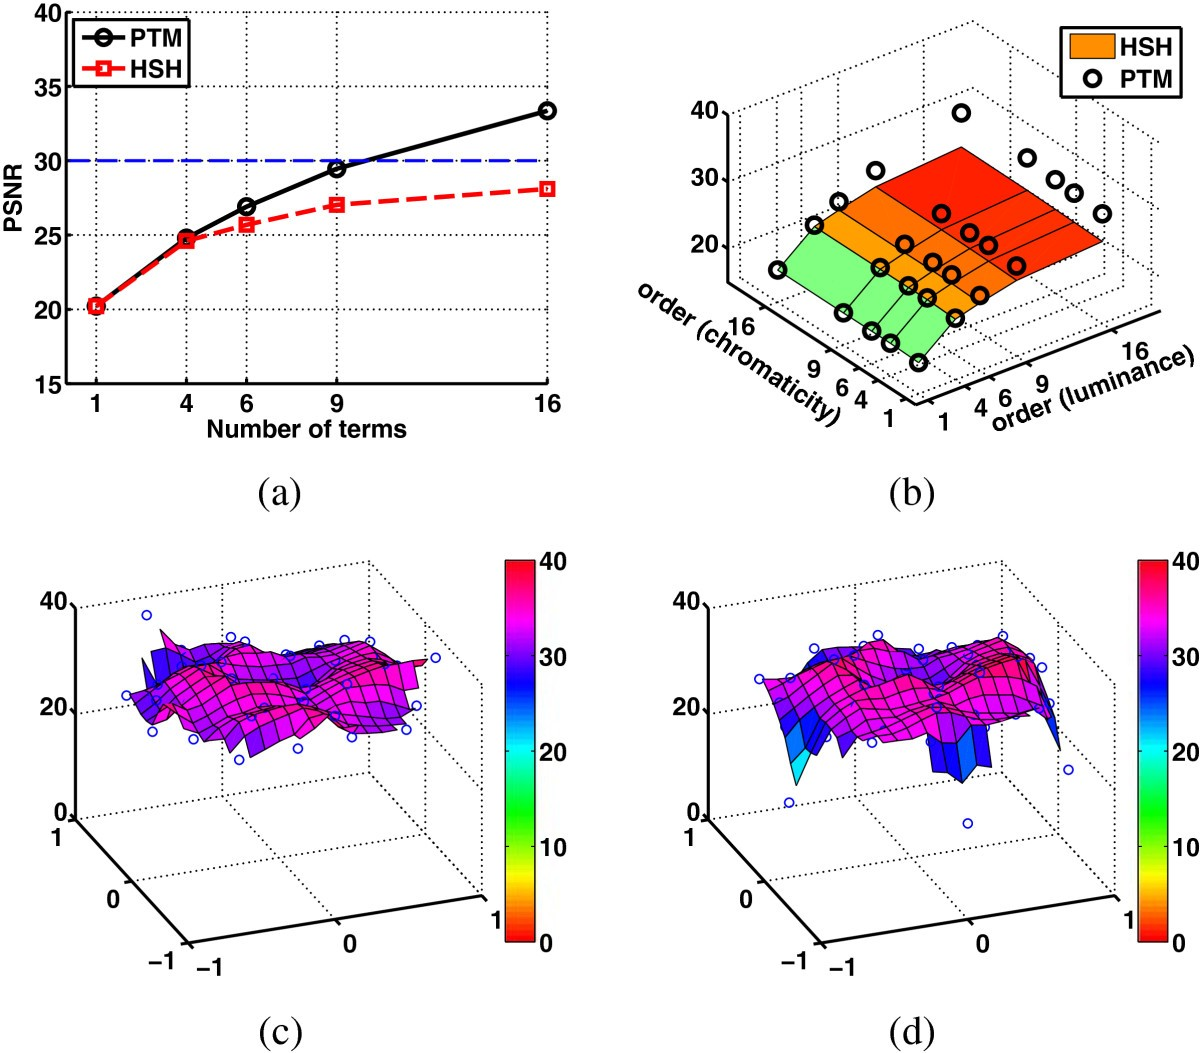 Efficient And Robust D Line Drawings Using Difference Of Gaussian : Efficient robust image interpolation and surface